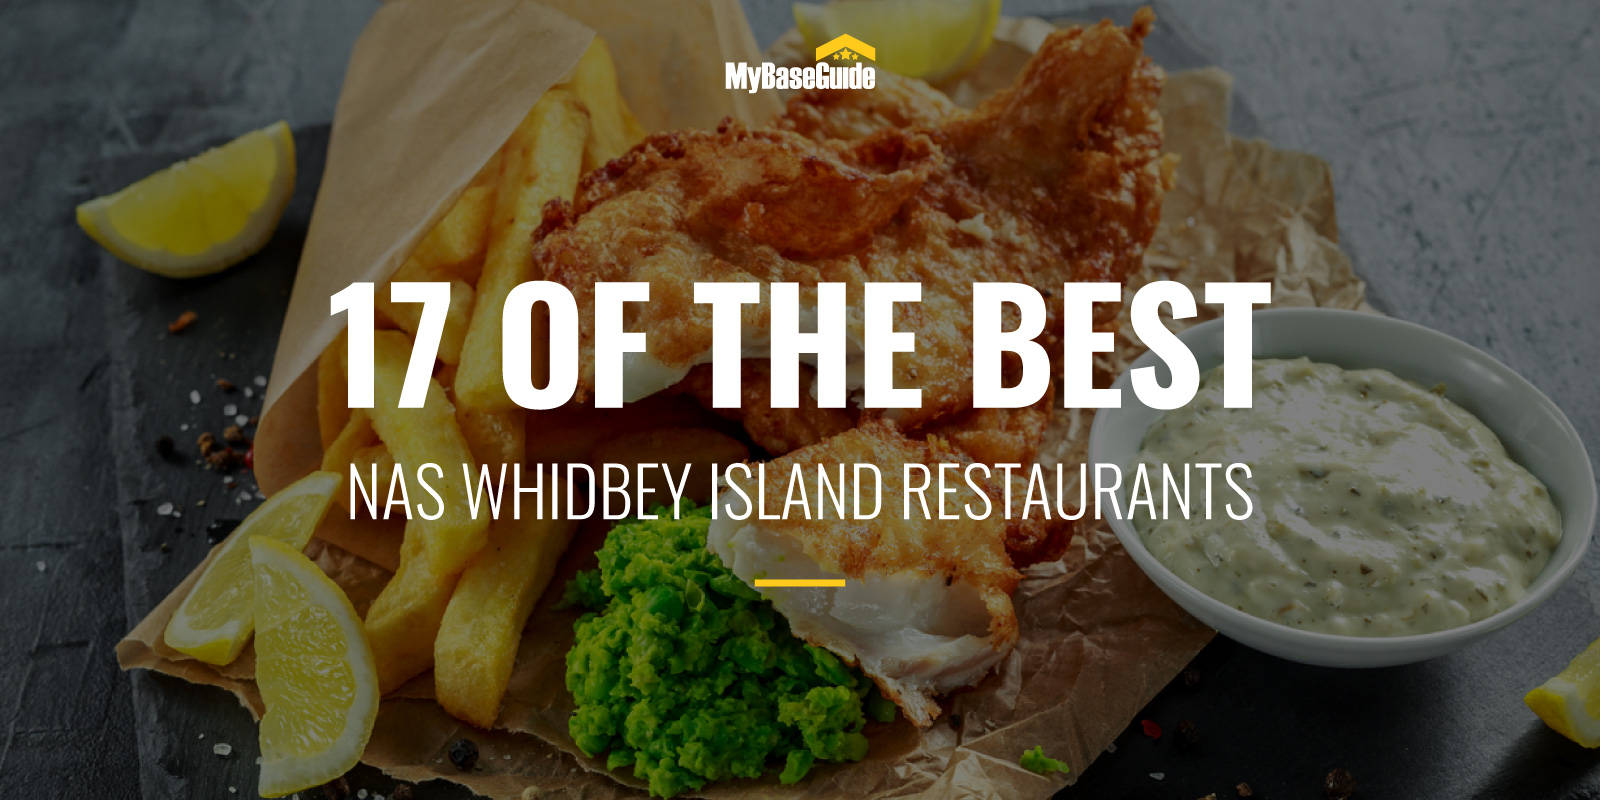 17 of the Best NAS Whidbey Island Restaurants